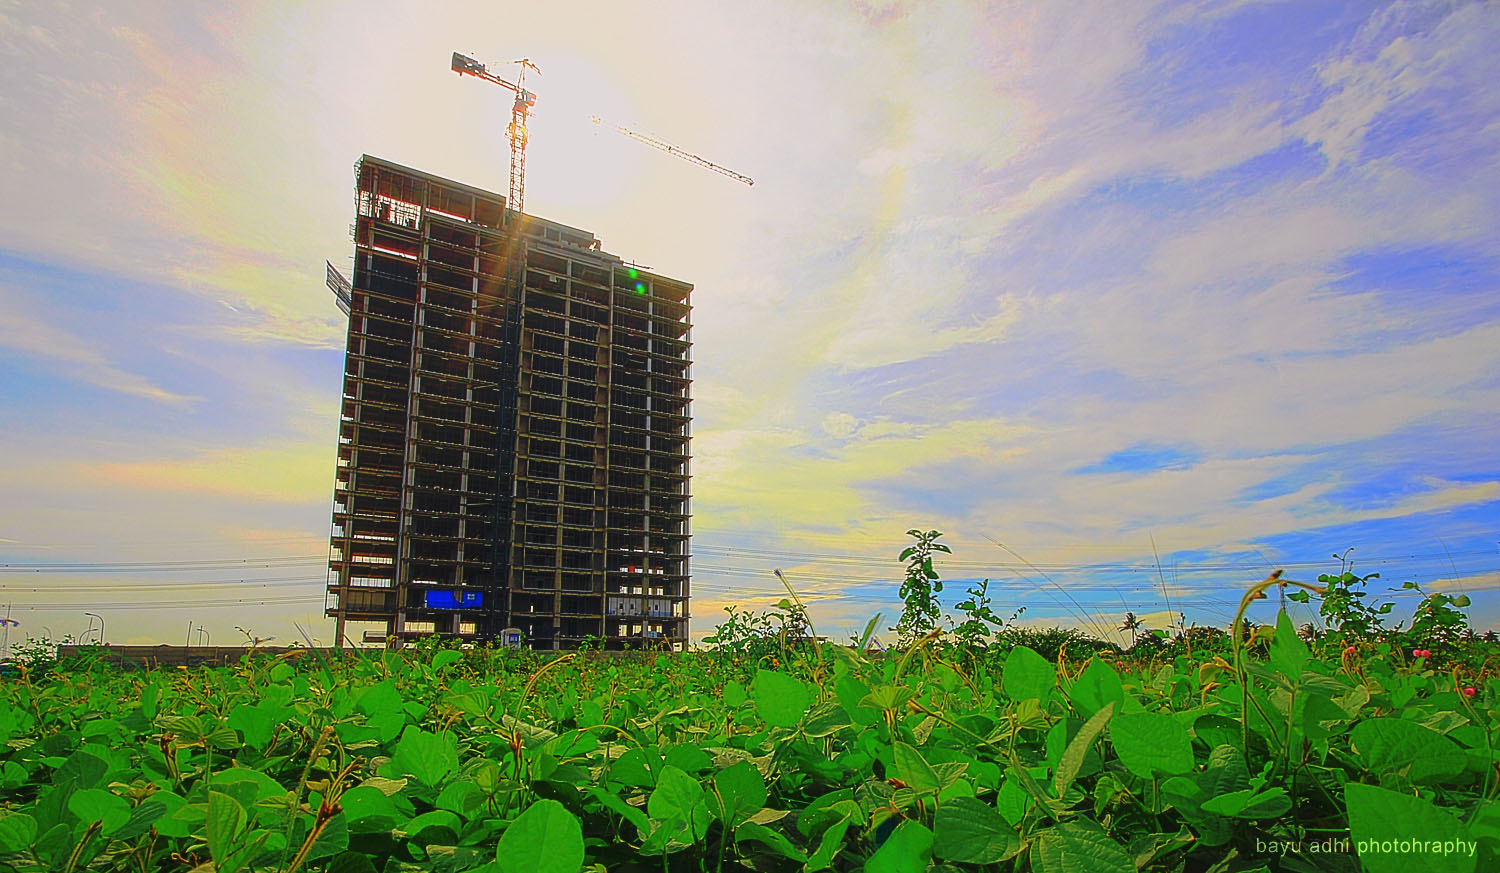 Photograph Unfinished Building by Bayu Adhi on 500px